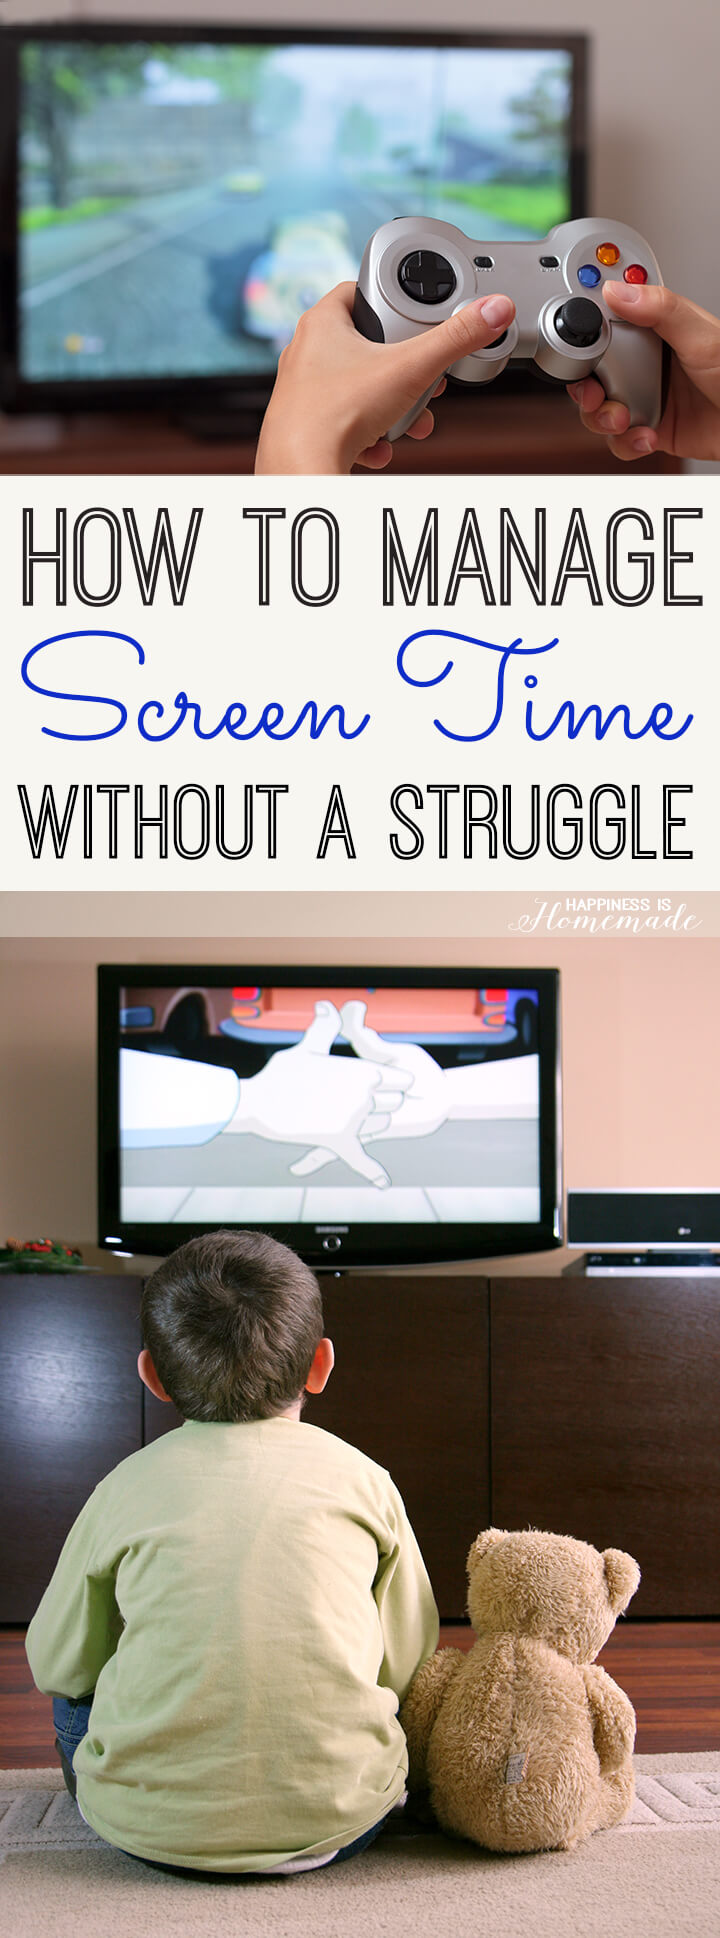 How to Mange Your Child's Screen Time Without a Struggle